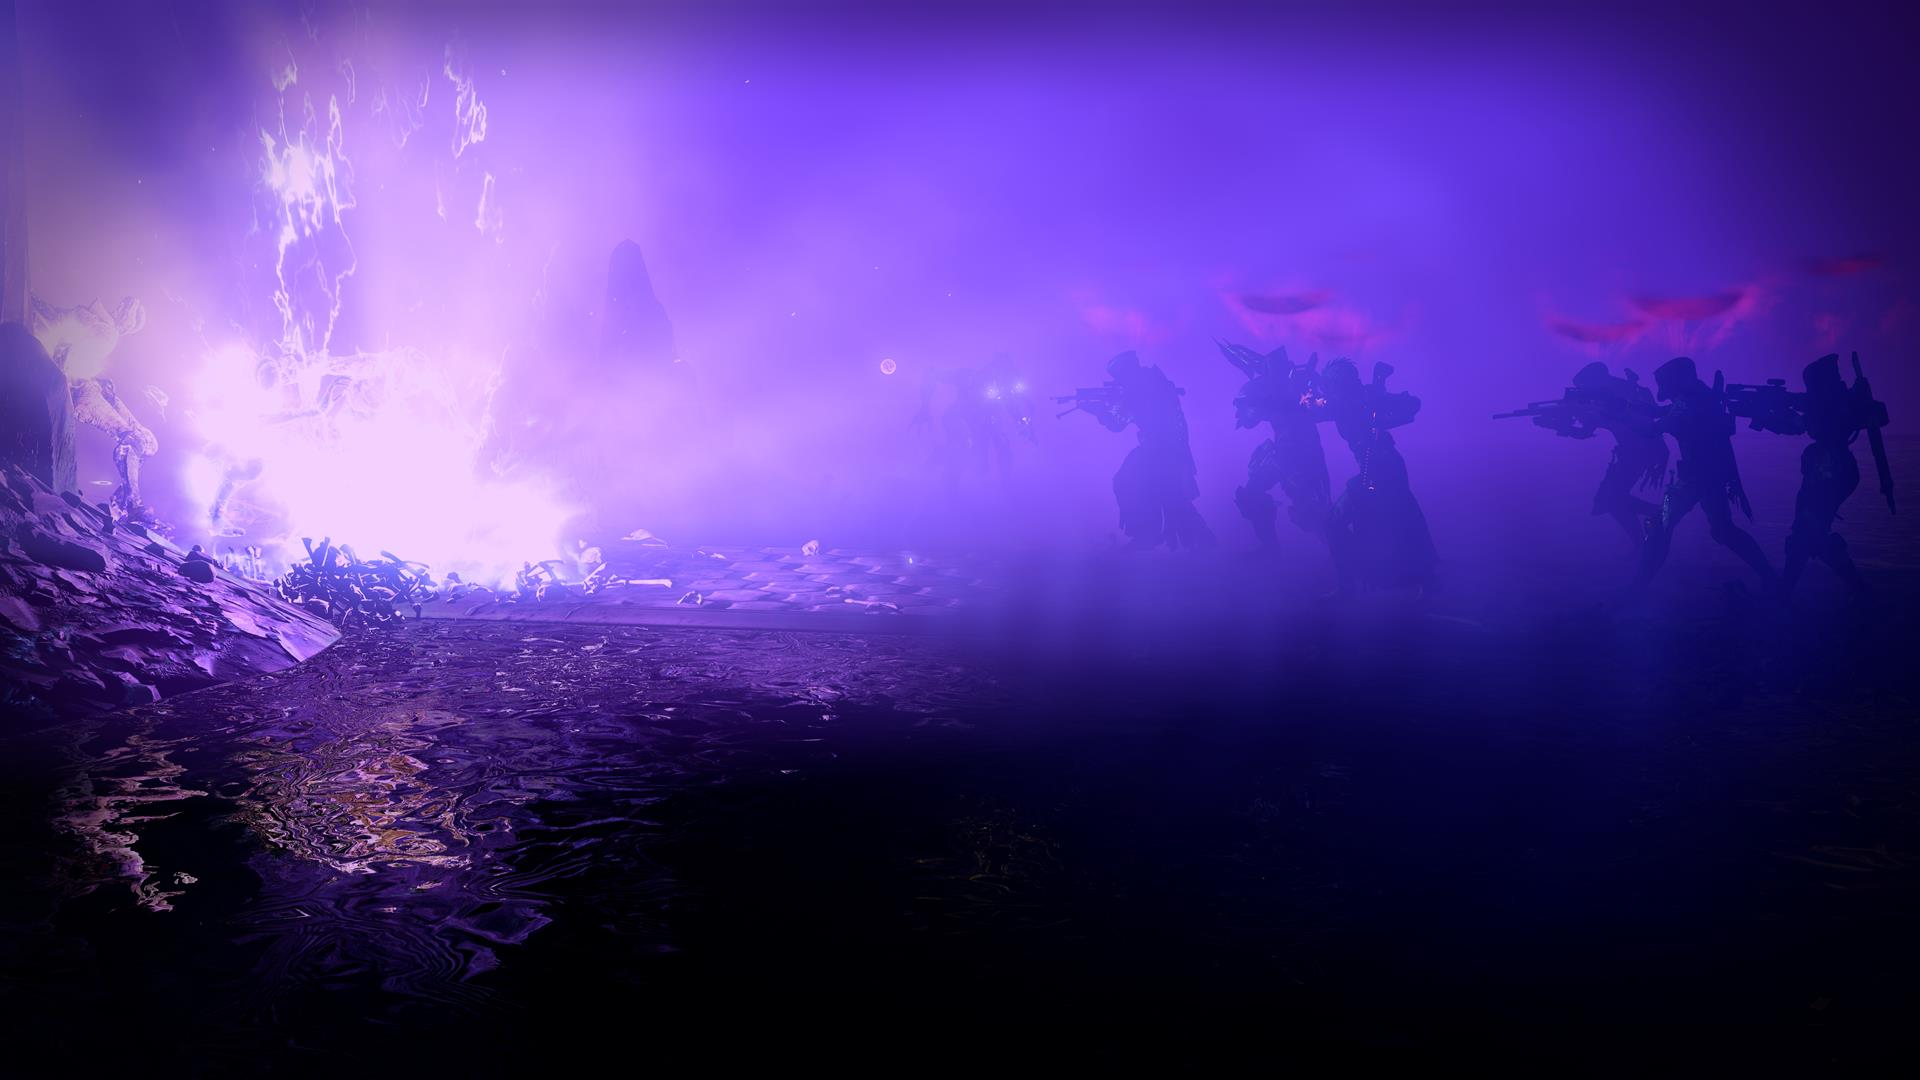 Fall Backgrounds Wallpaper At Night Destiny Guardians Don T Fall For The Quot Heavy Ammo Trick